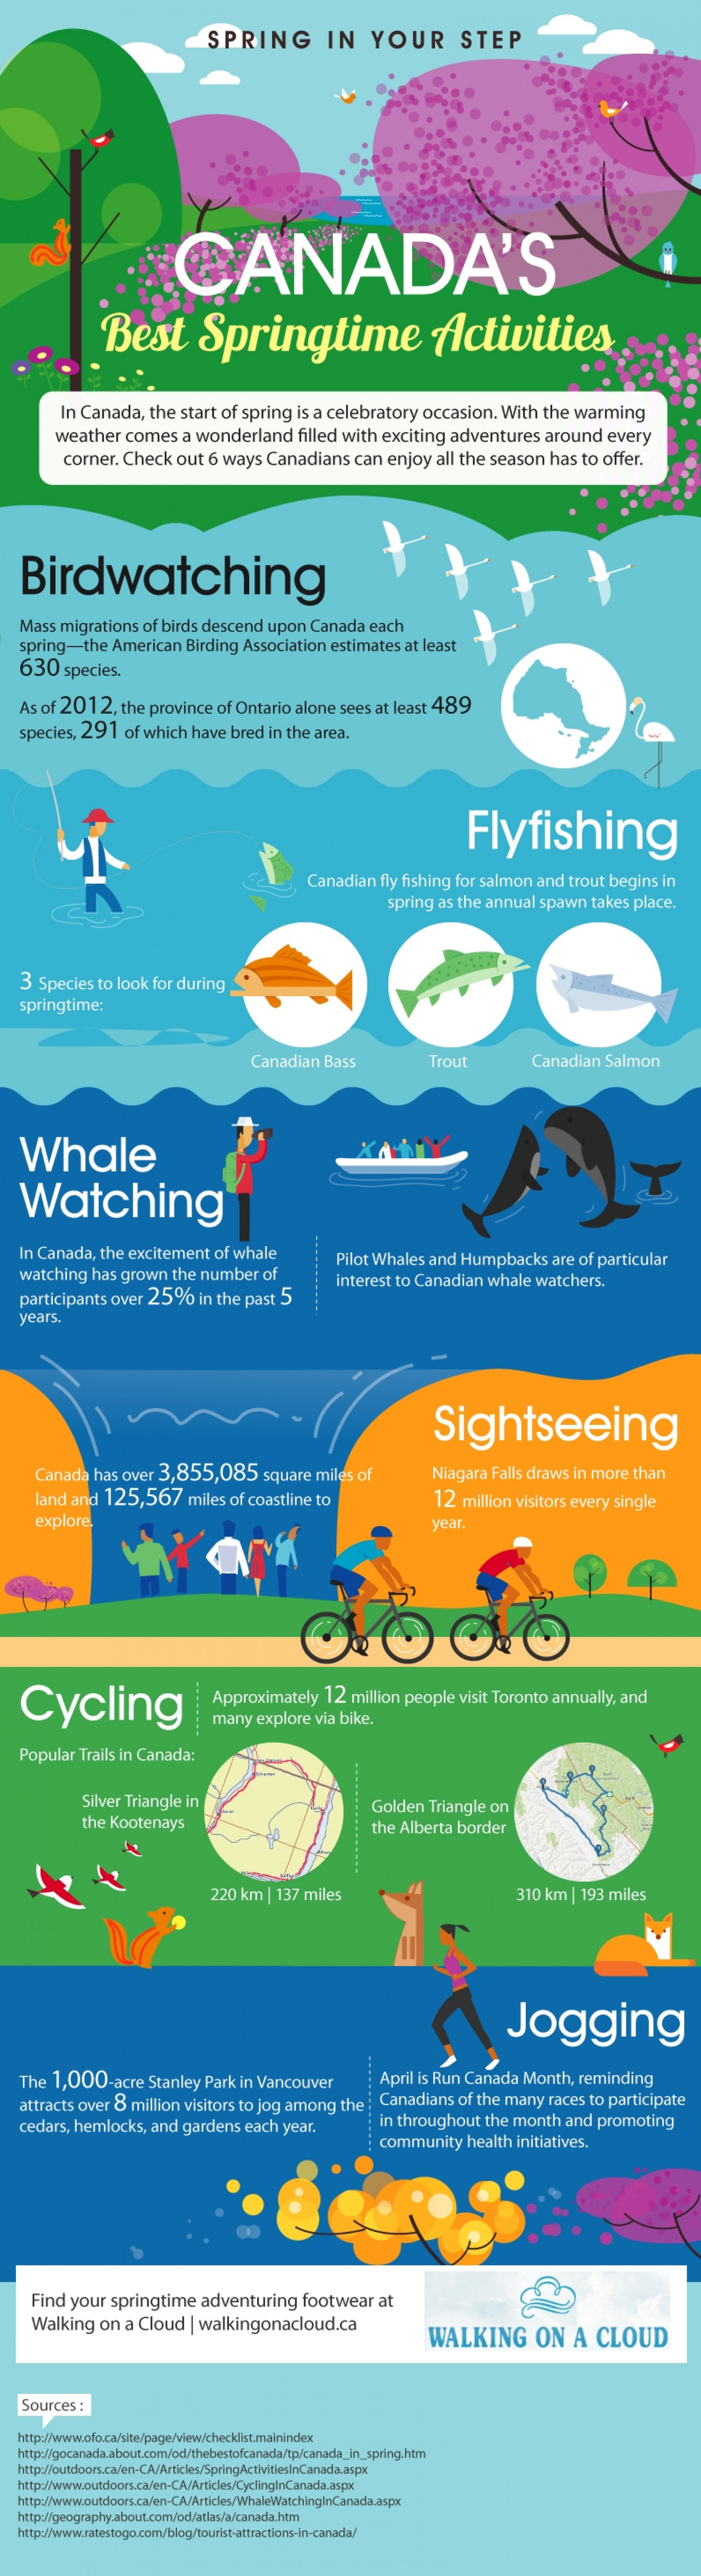 Canada's Best Springtime Activities Infographic